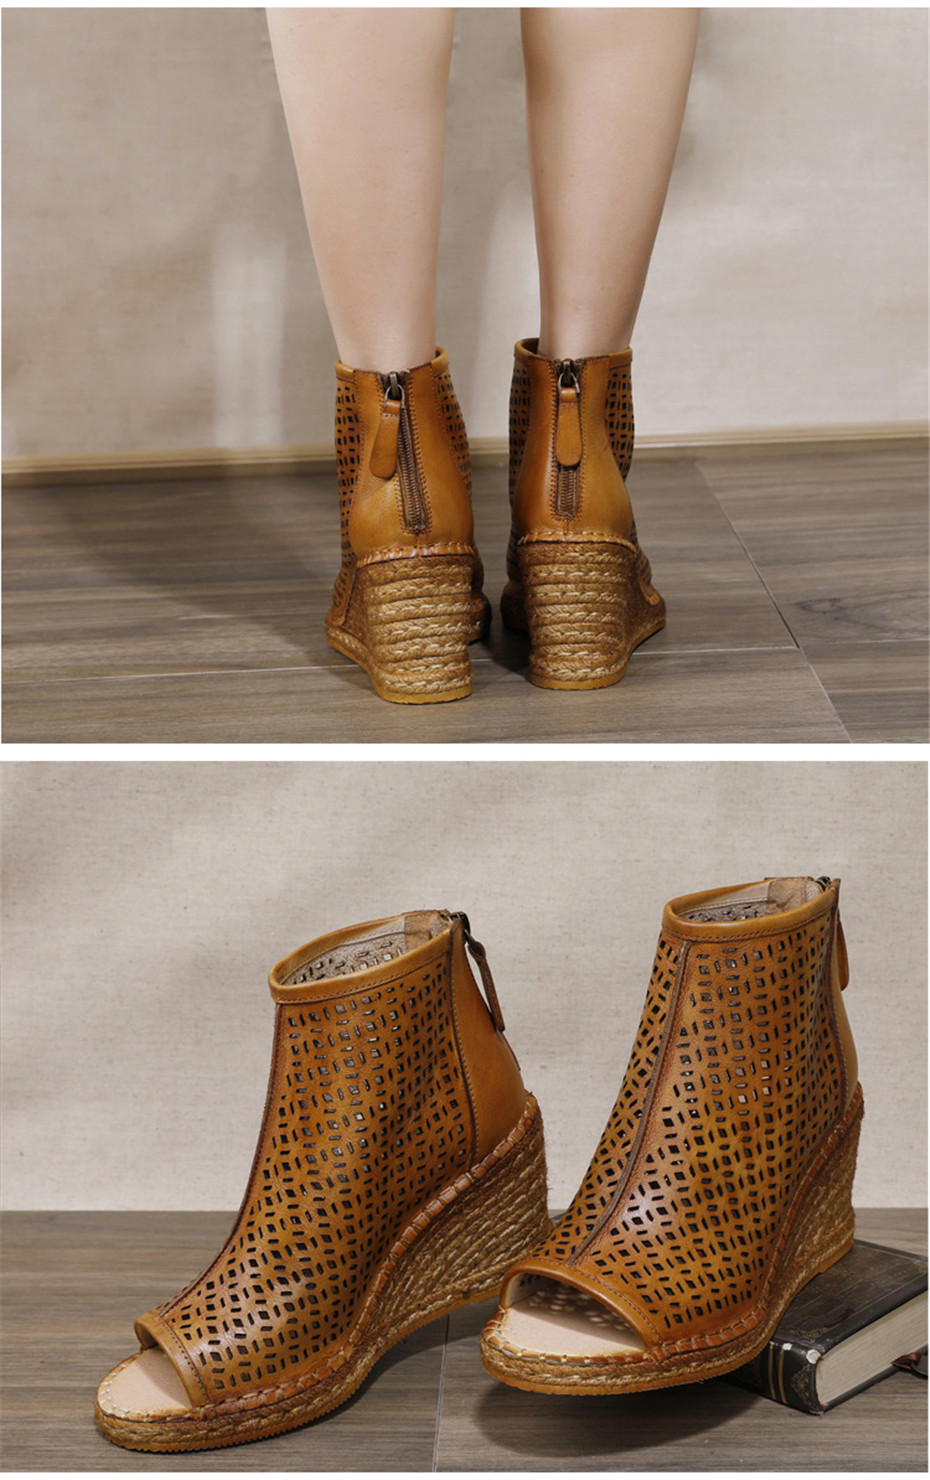 Spring Summer 2020 New Women Wedges Sandals Genuine Leather Peep Toe Hollow Woven High Wedge Heels Shoes Woman High-Top Sandals (14)